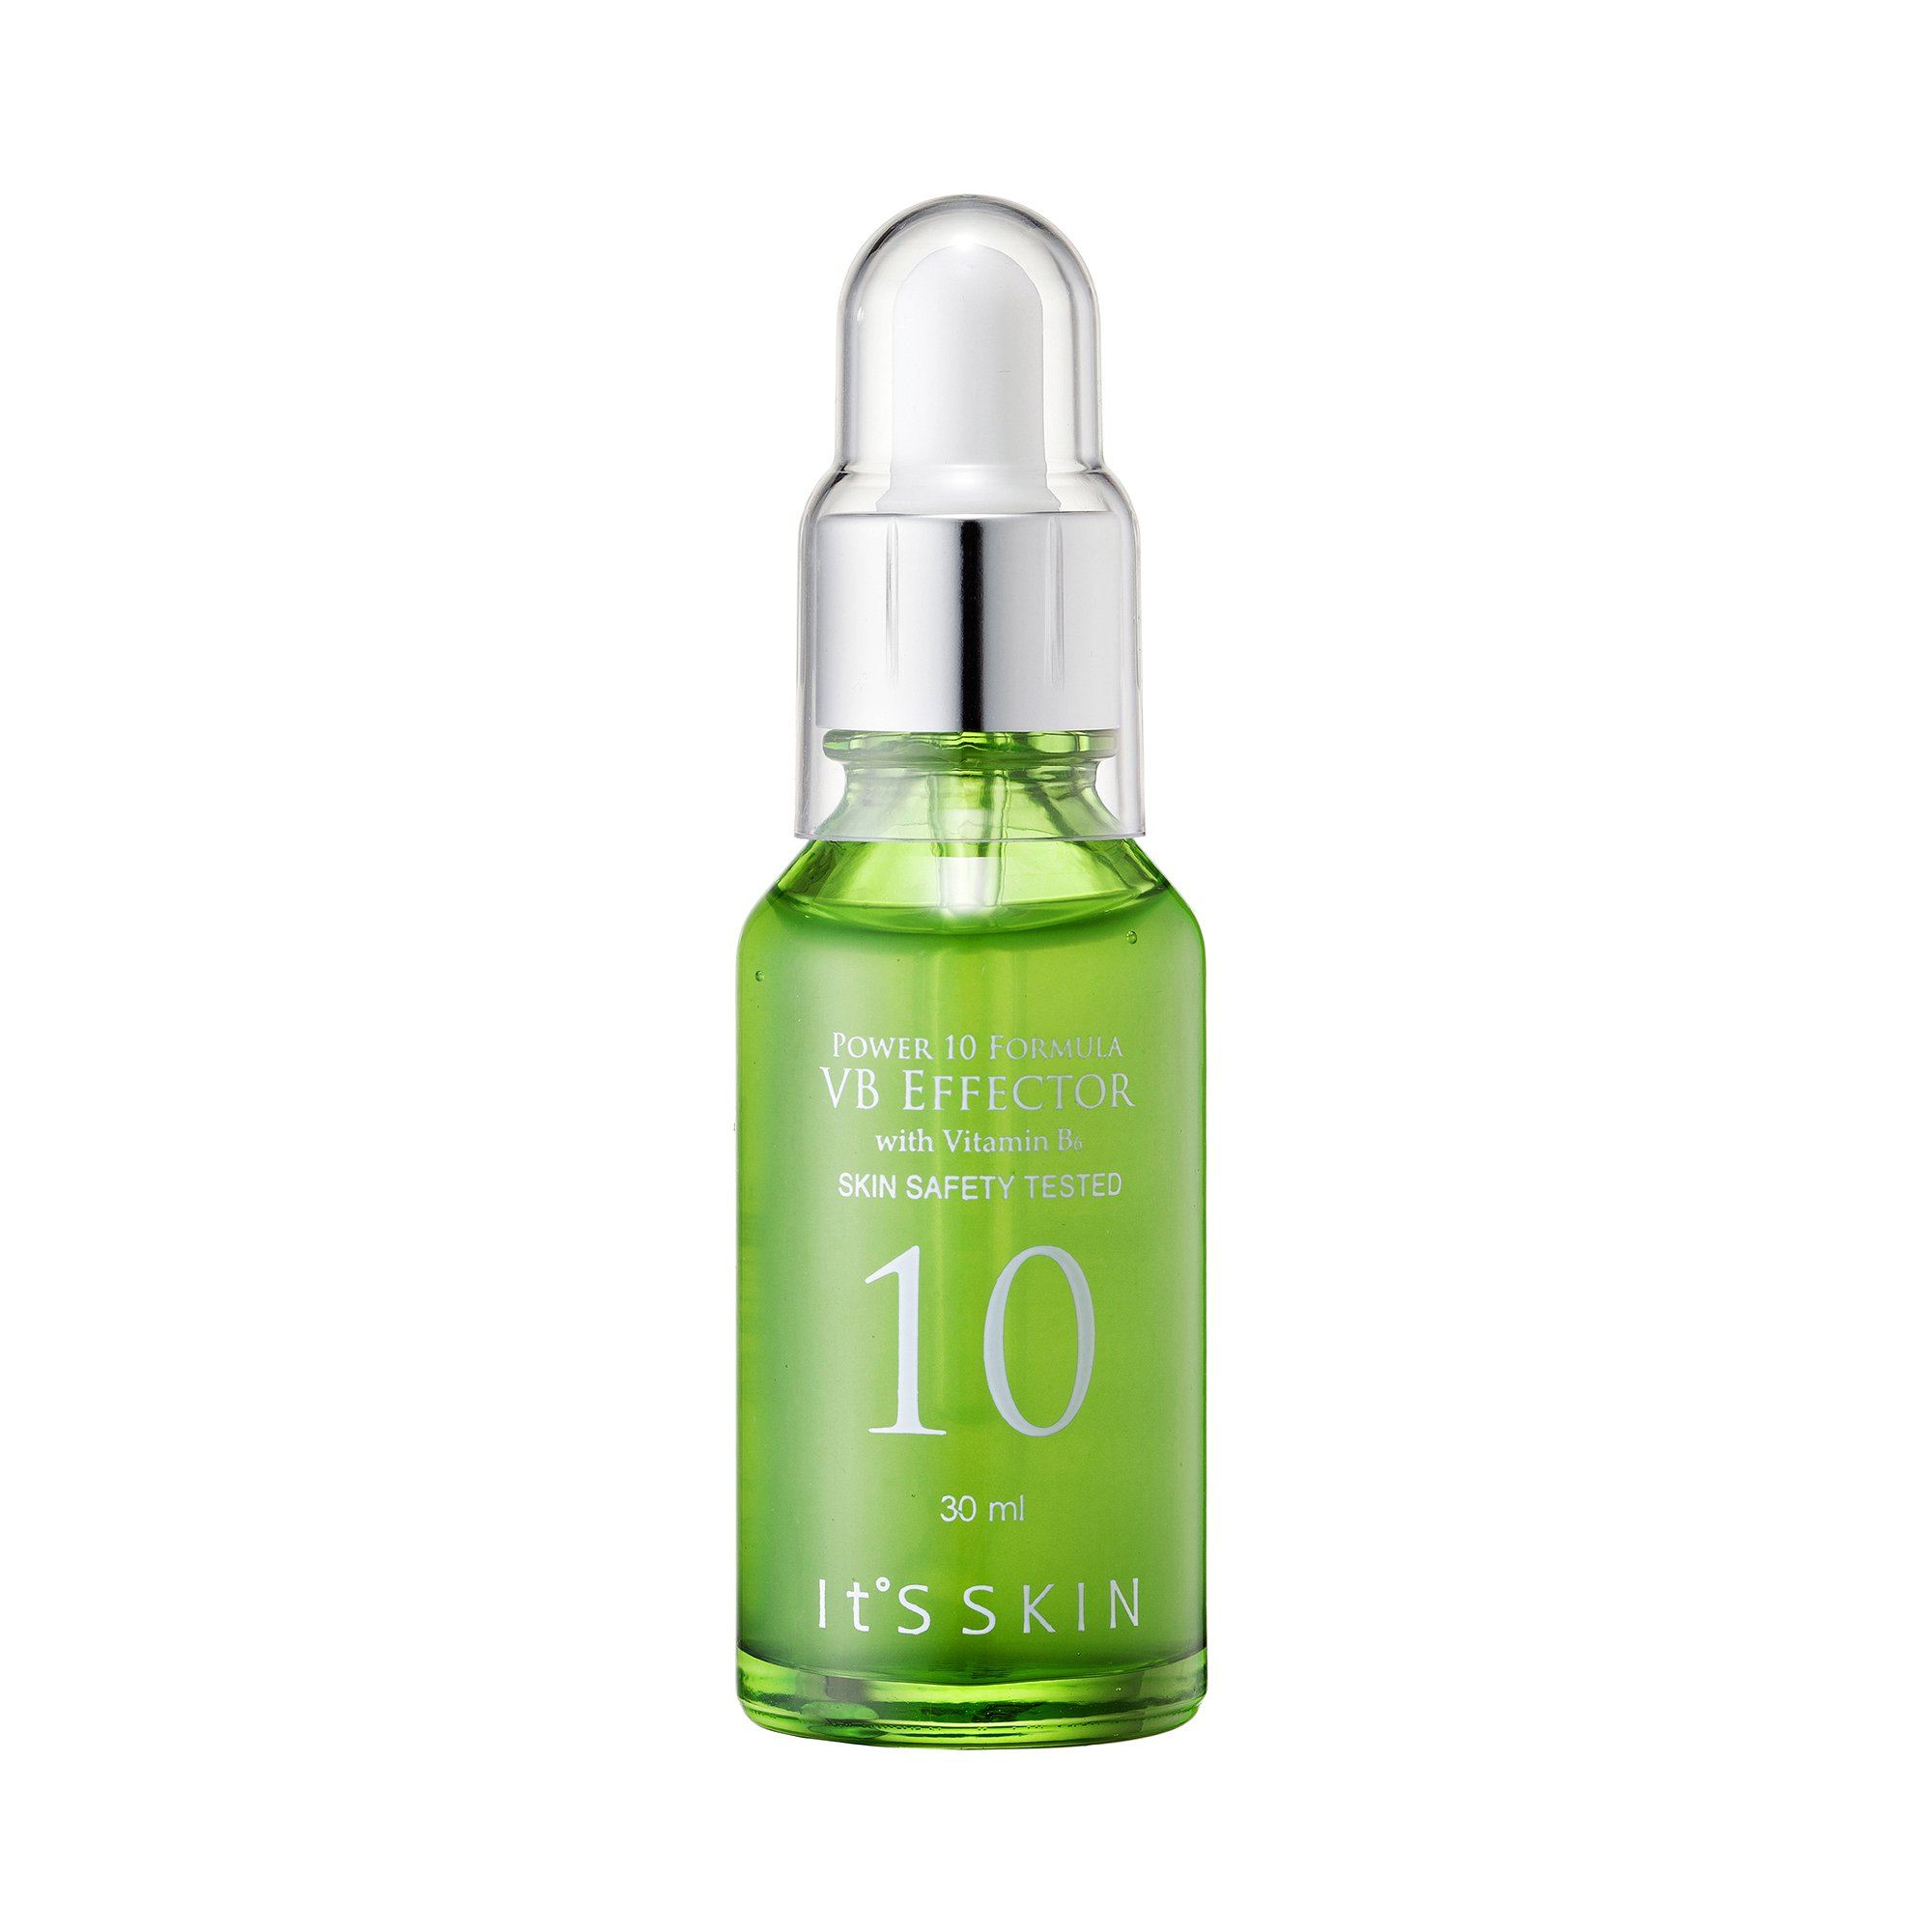 Health & Beauty > Personal Care > Cosmetics > Skin Care > Lotion & Moisturizer - Power 10 Formula VB Effector Serum Do Twarzy 30 Ml